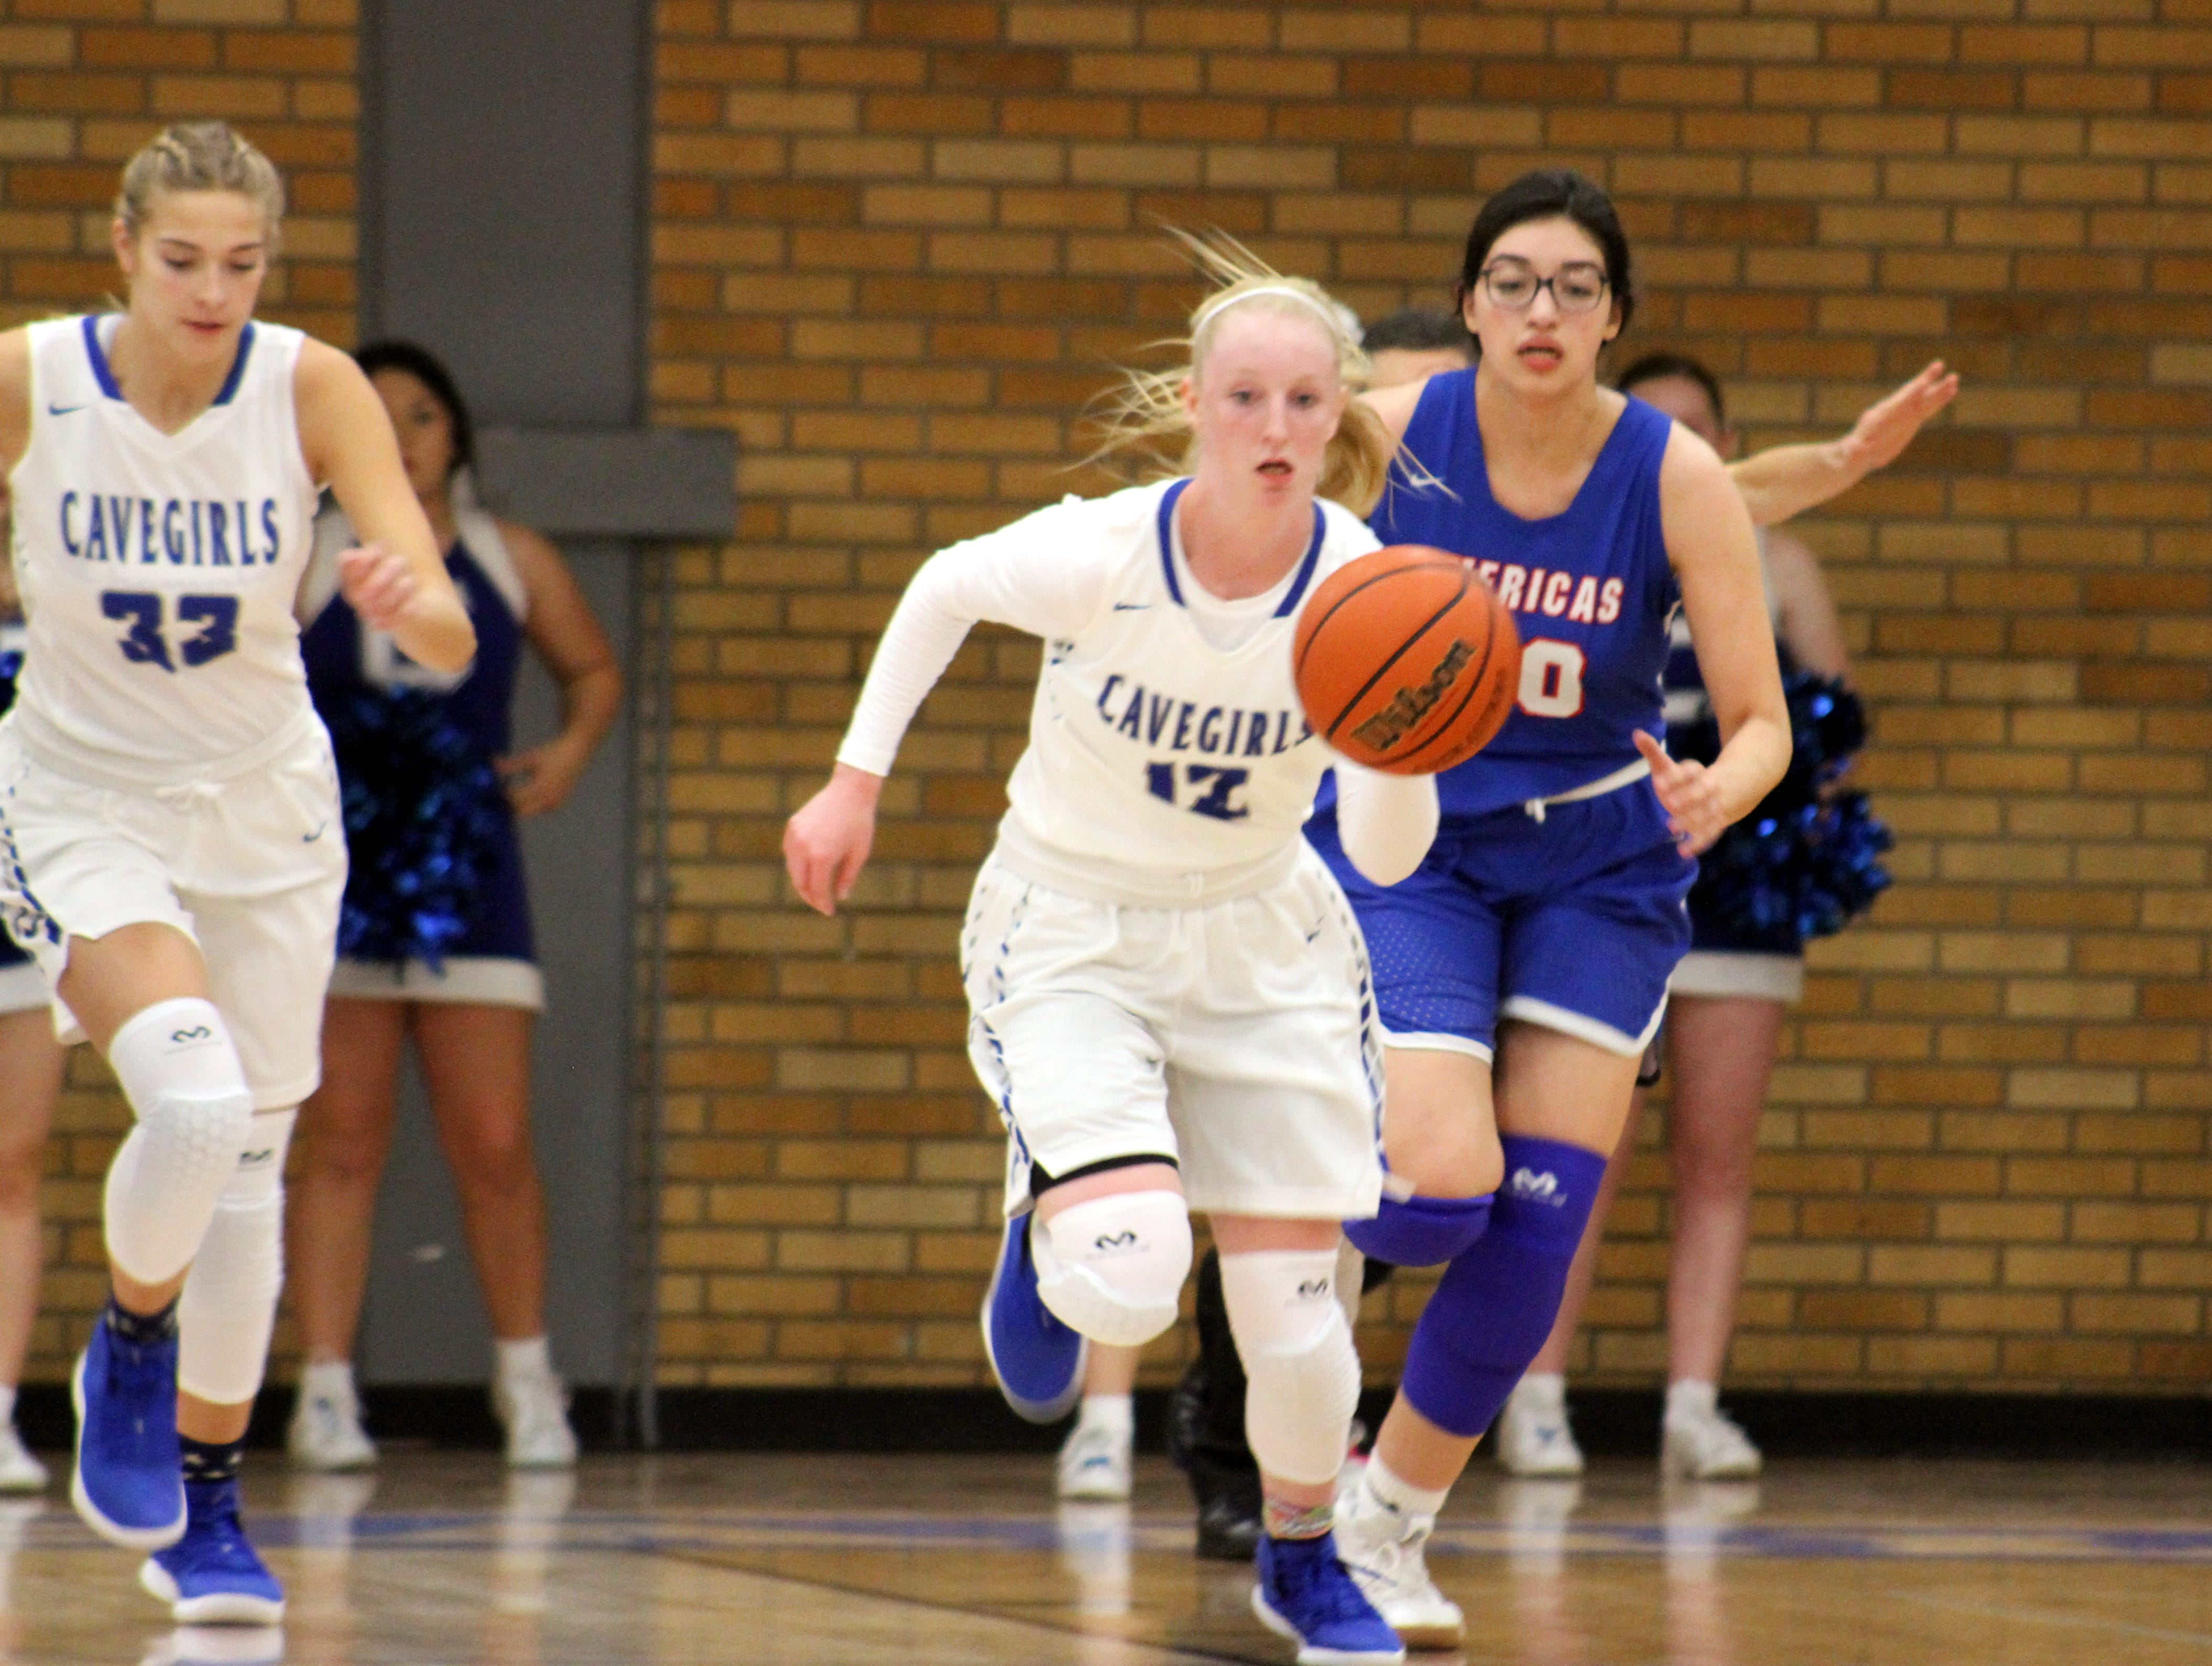 Carsyn Boswell starts a fastbreak during Monday's game against Americas.